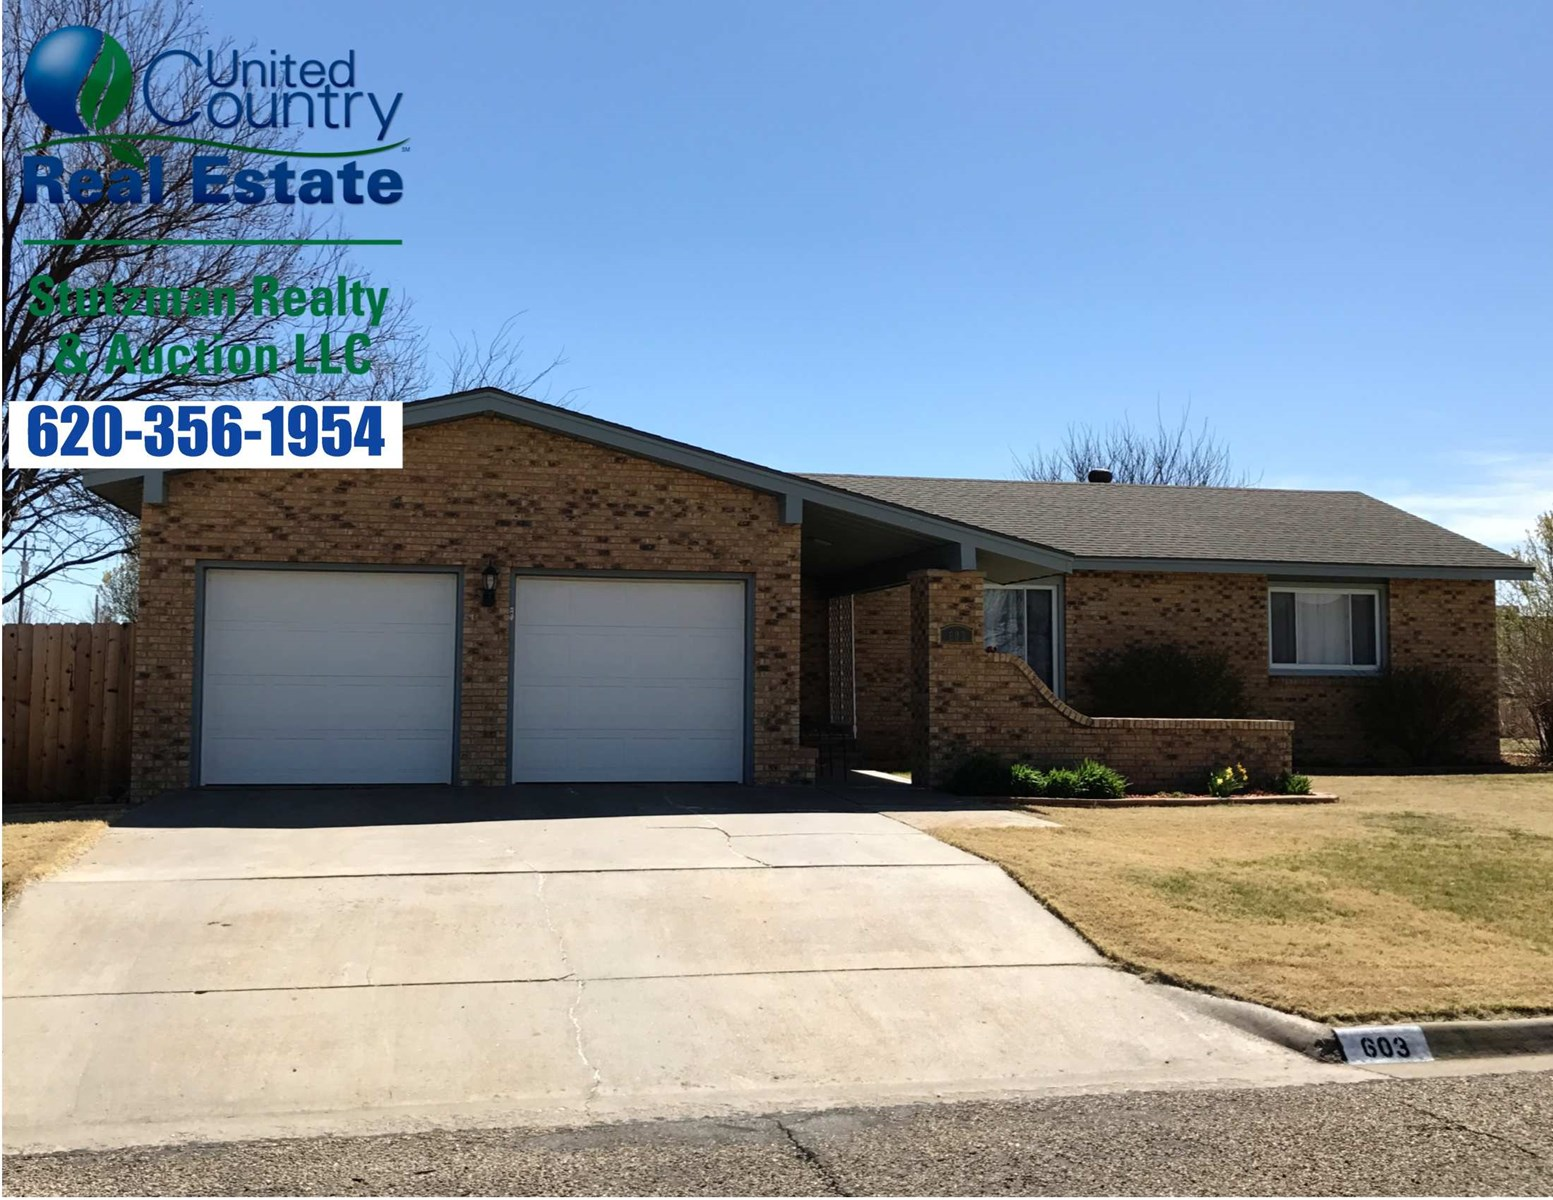 UPDATED FOUR BEDROOM HOME FOR SALE IN ULYSSES, KANSAS